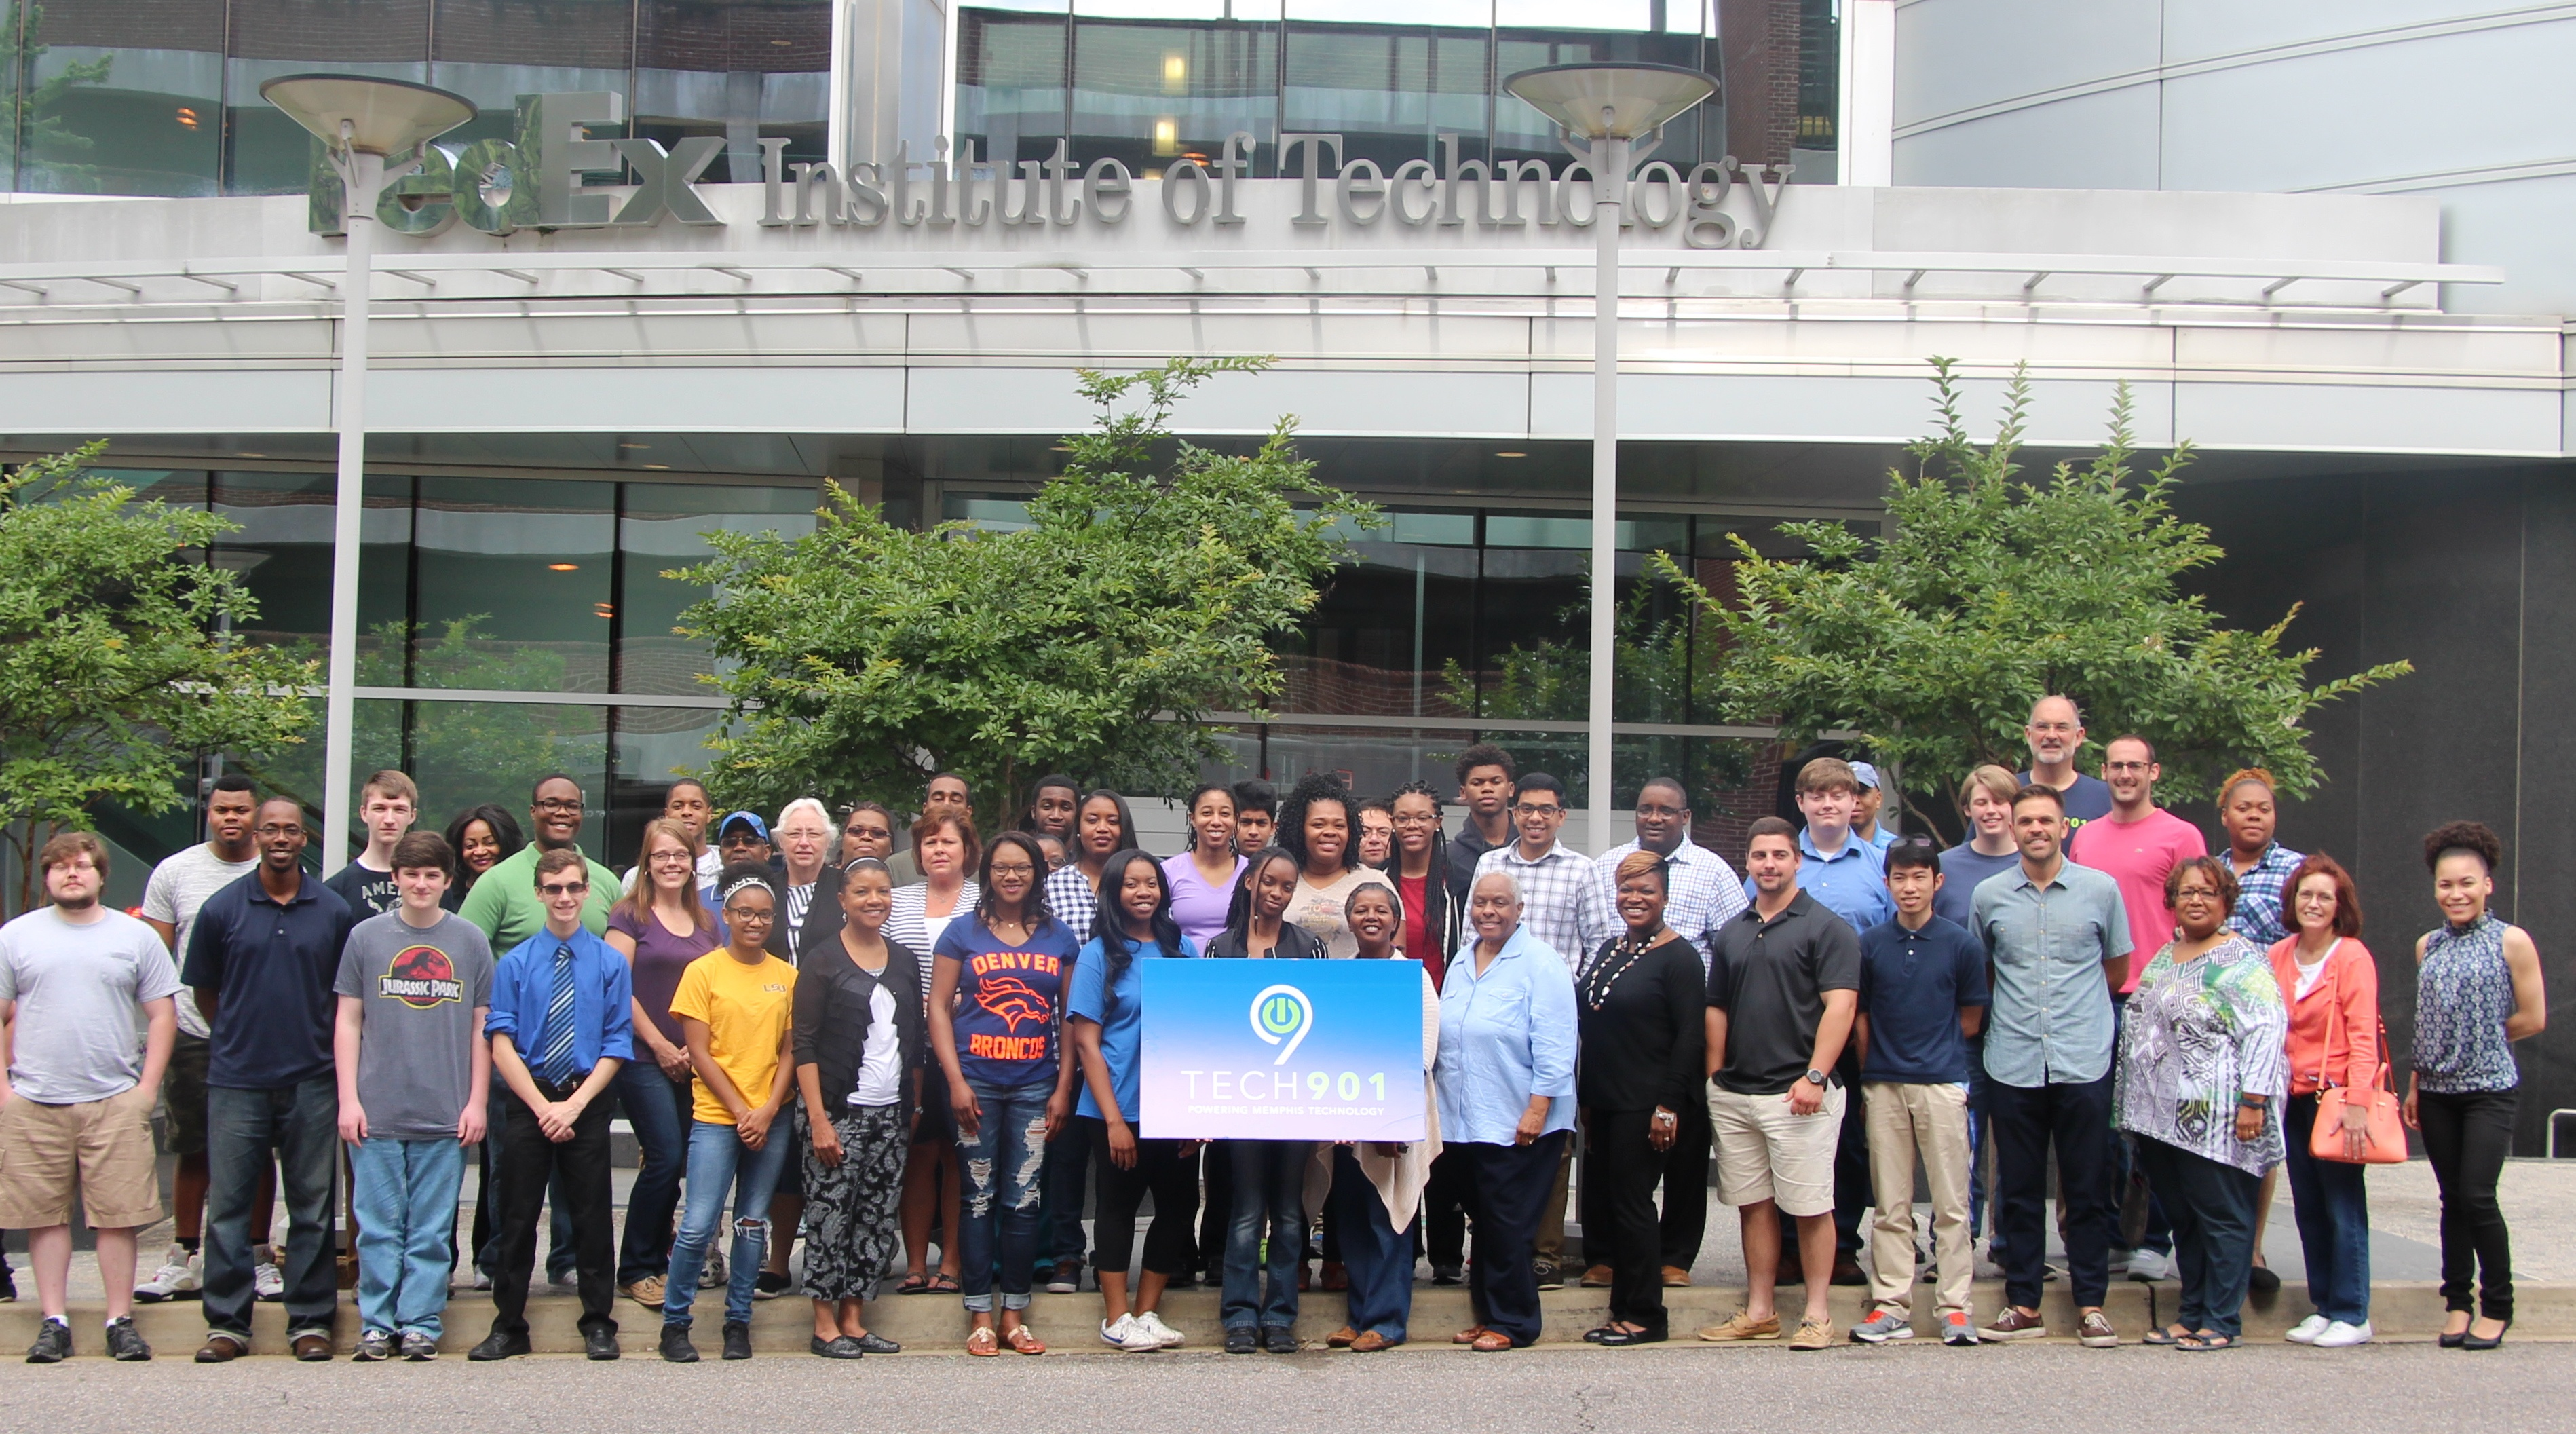 Tech901 class at the FedEx Institute of Technology